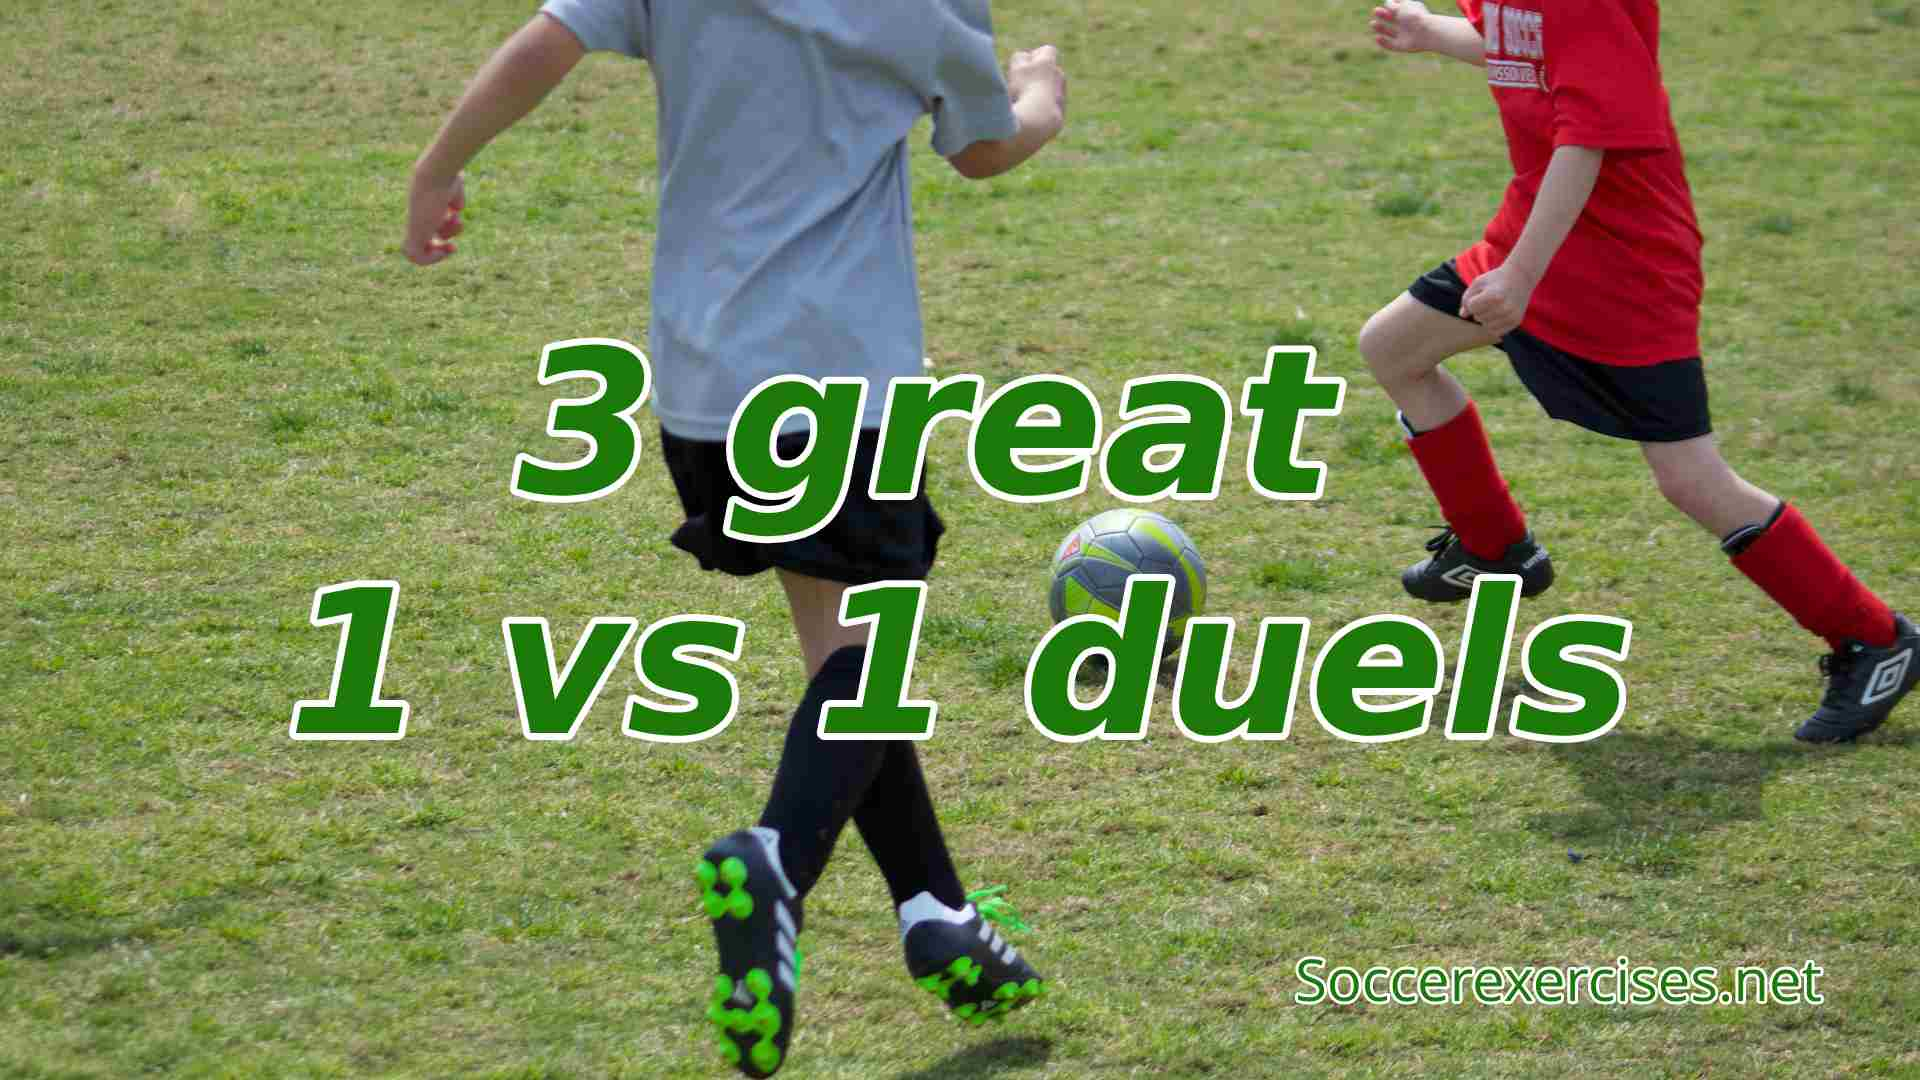 3 great 1 vs 1 duel drills.